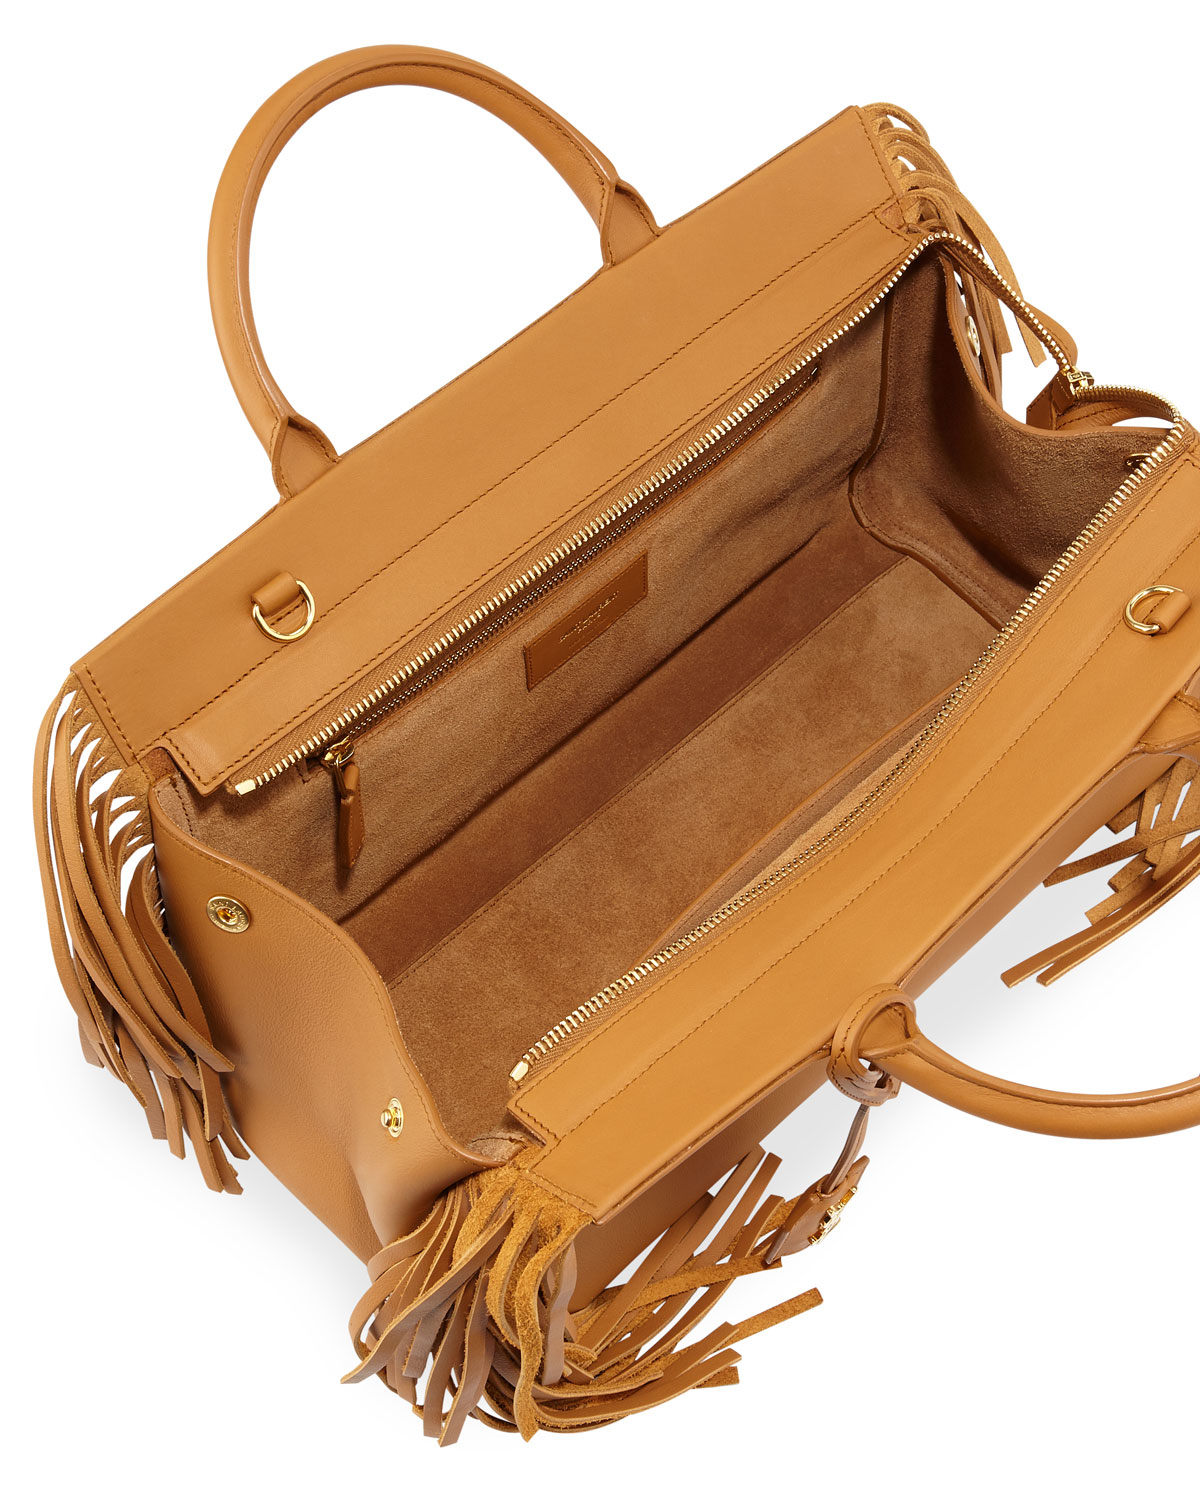 6f94b8ca34 Gallery. Previously sold at  Bergdorf Goodman · Women s Fringed Bags ...